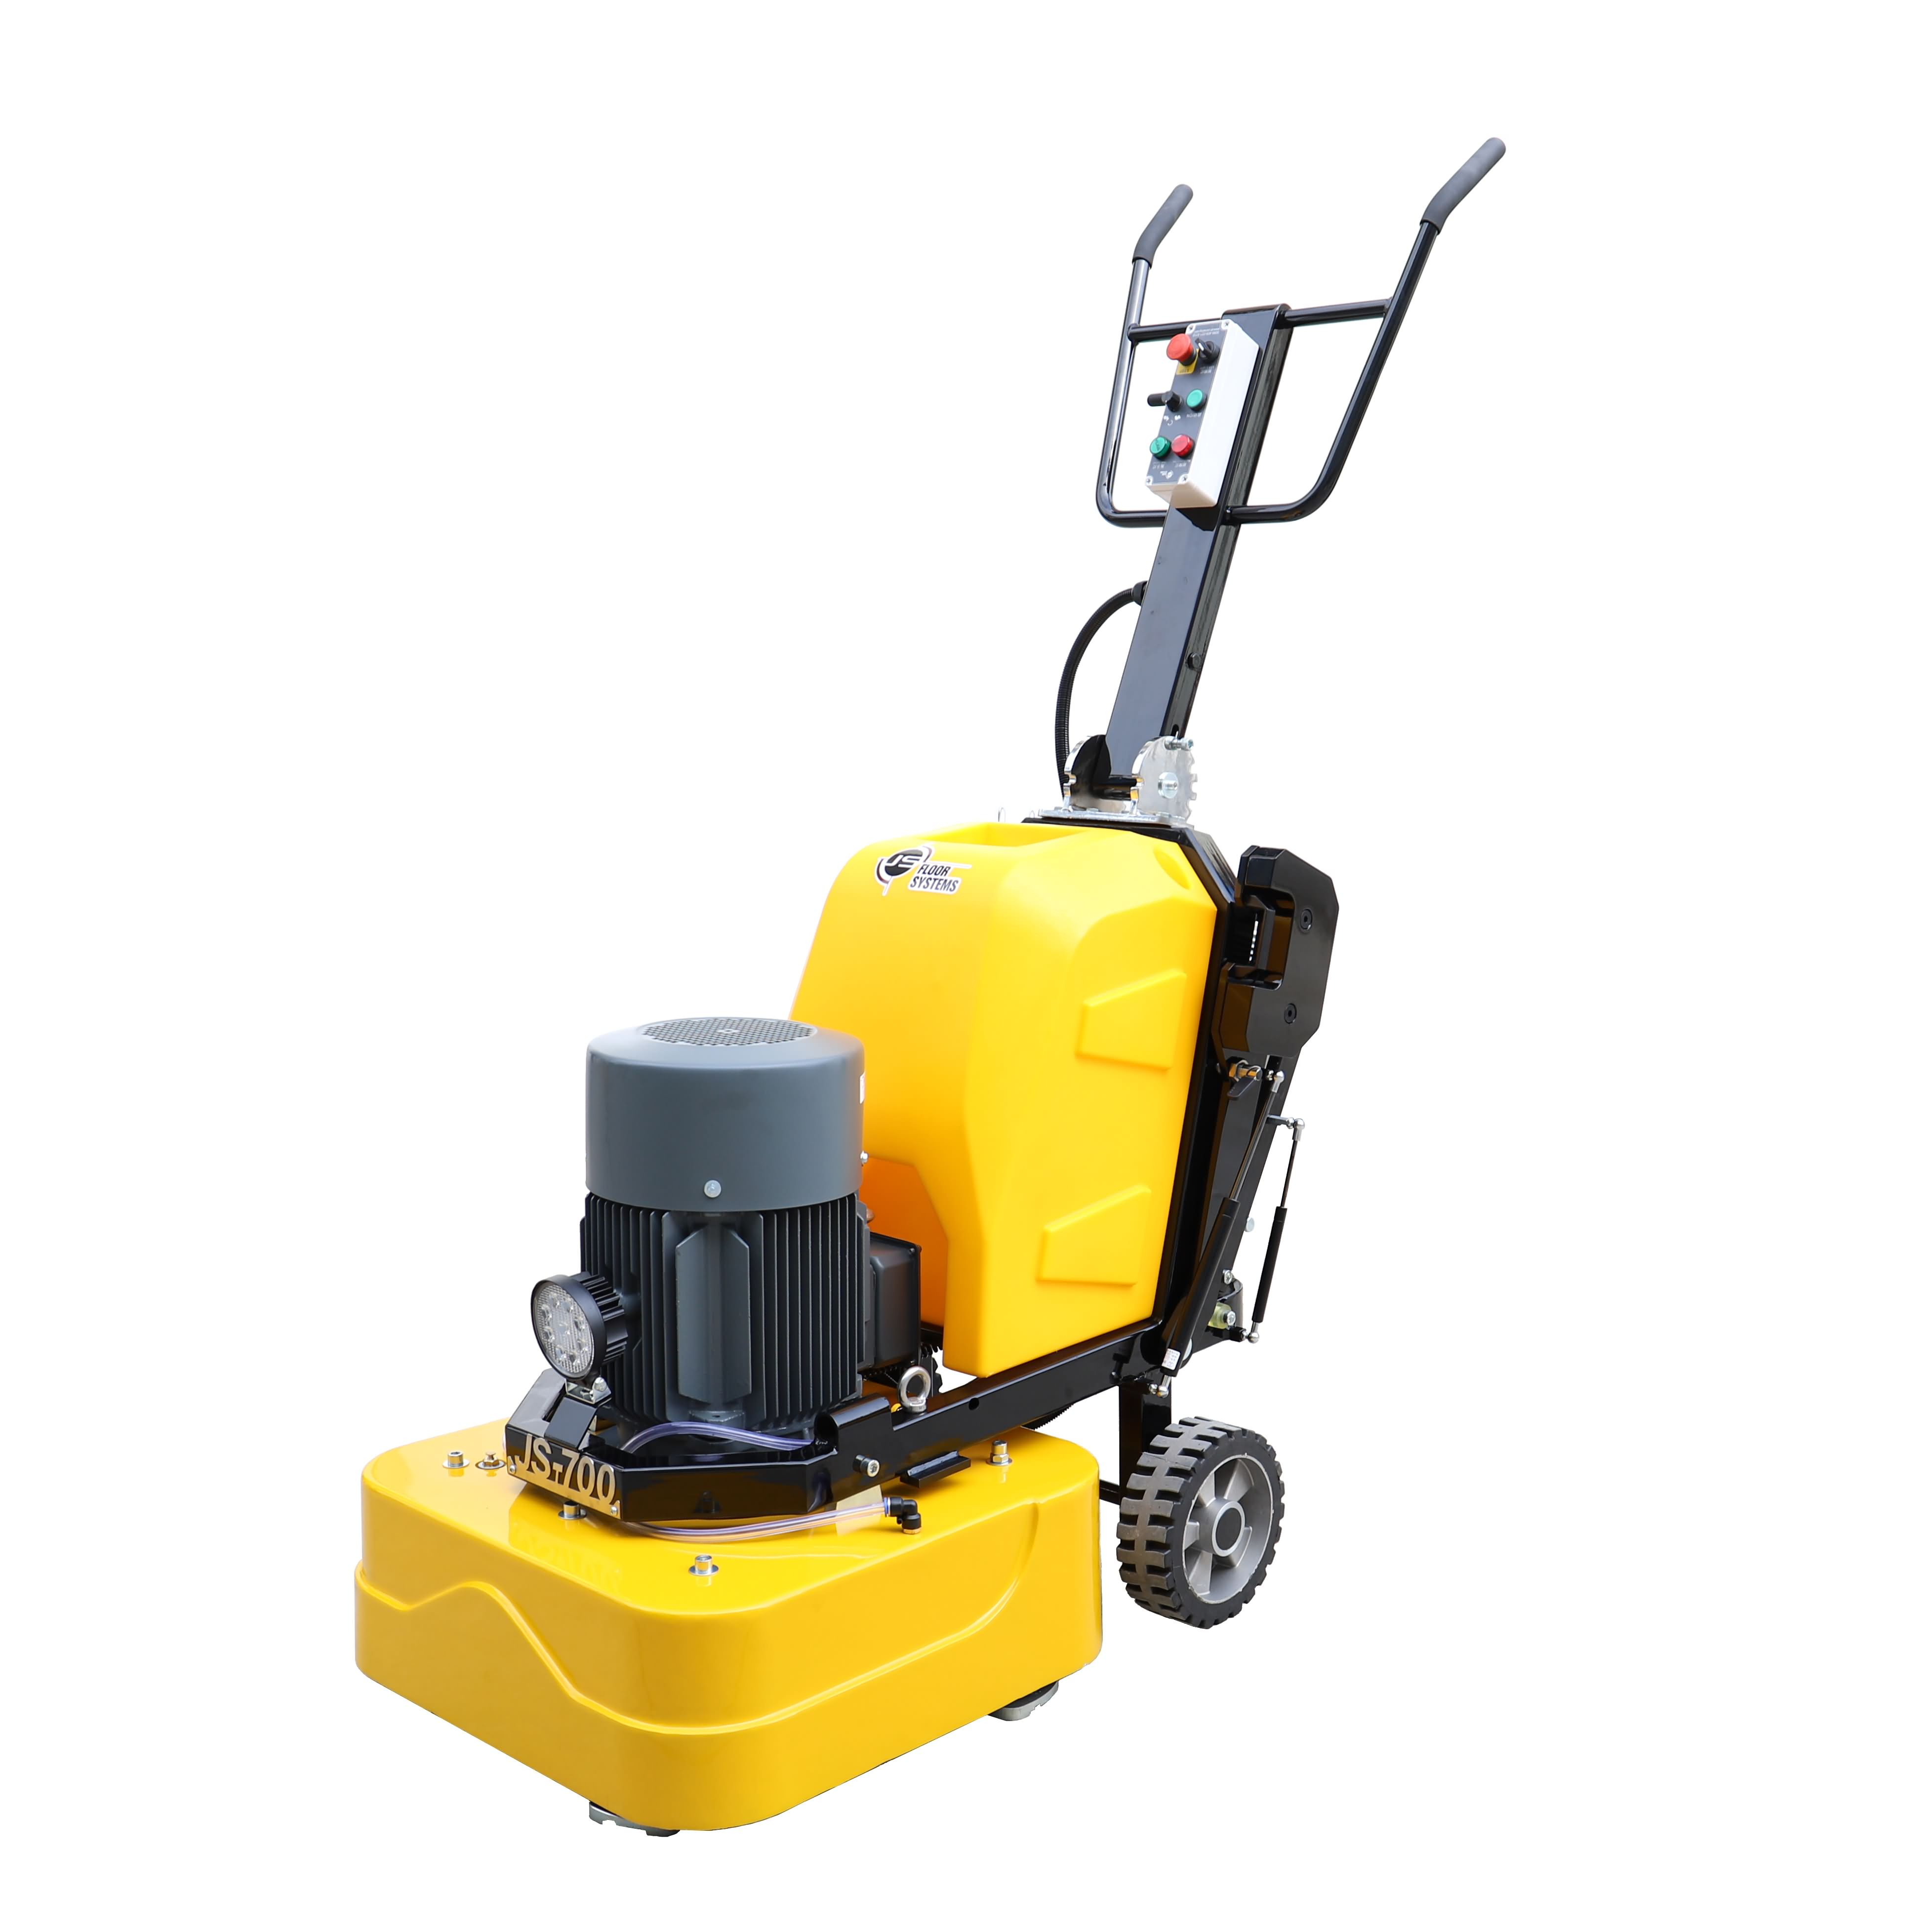 Wholesale Dealers of Abrasive Tools -